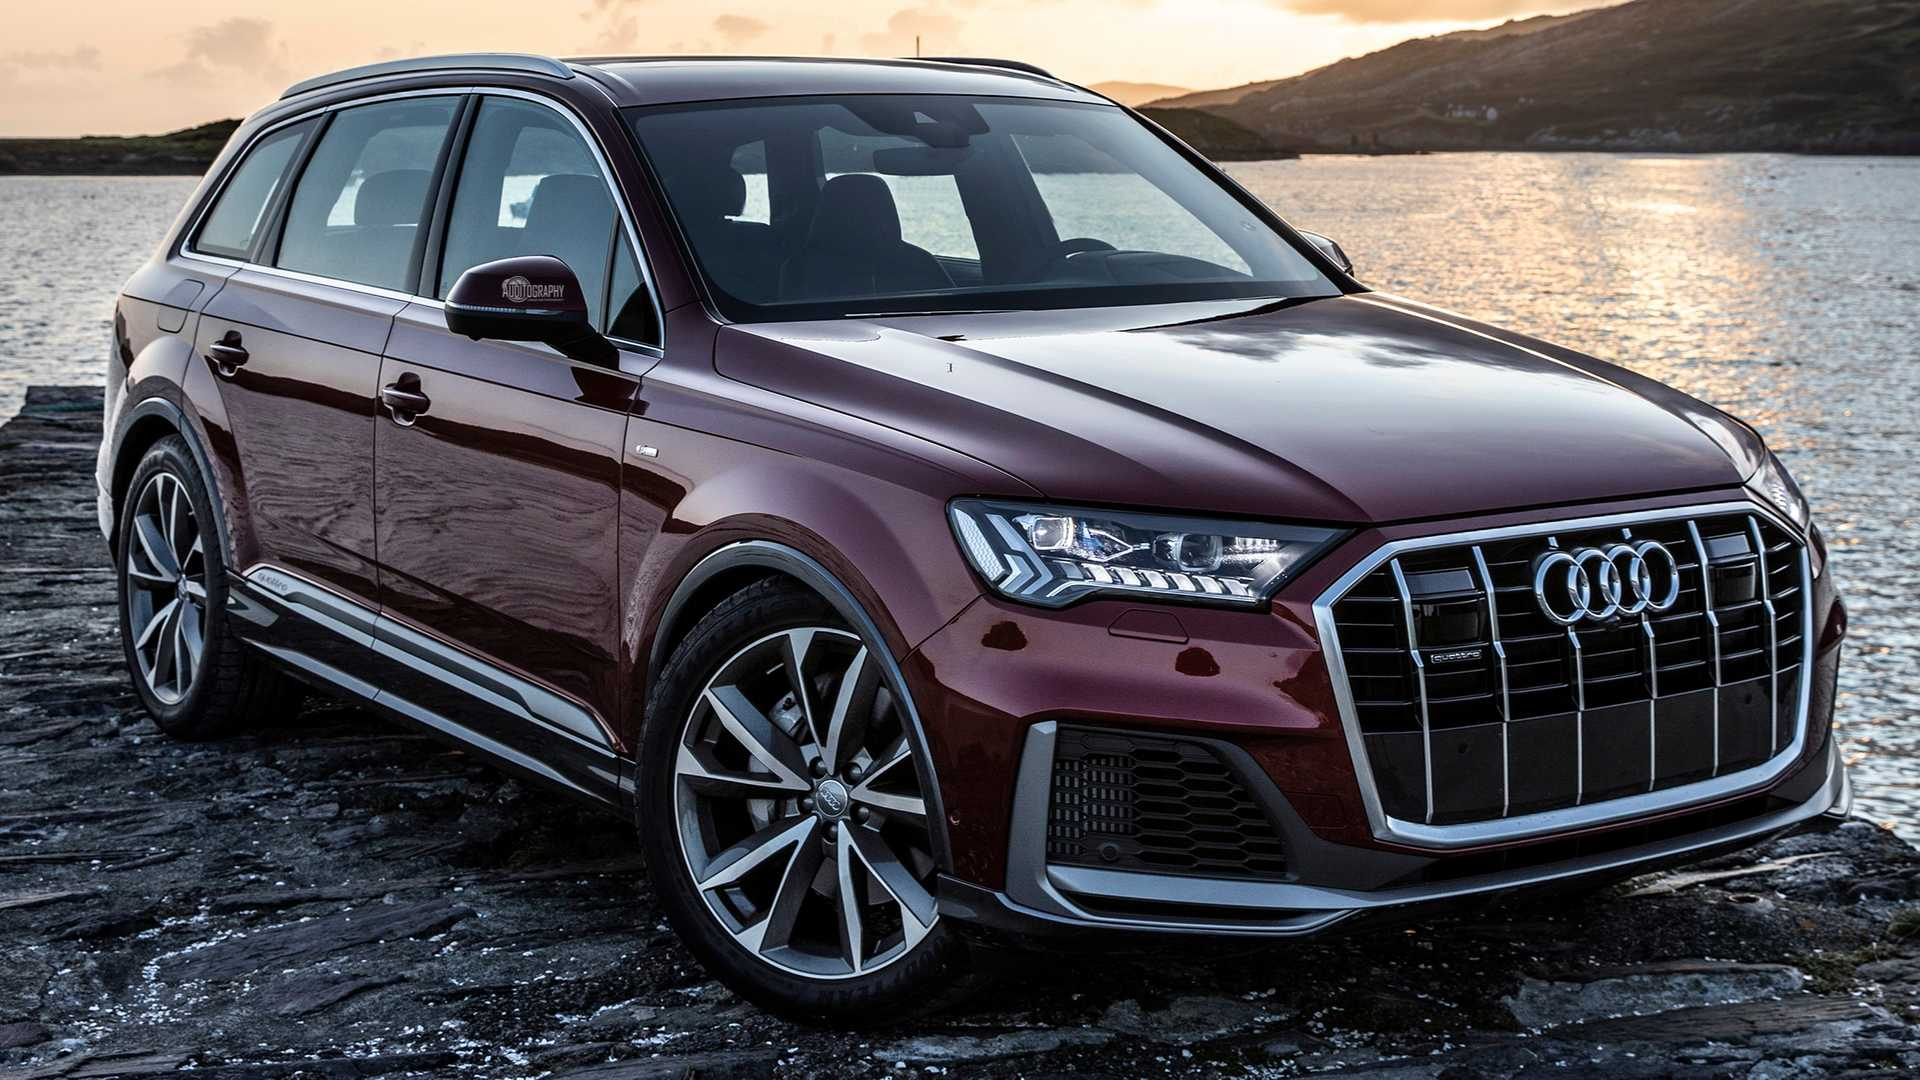 2020 Audi Q7 Matador Red Poses For The Camera To Show Big Update